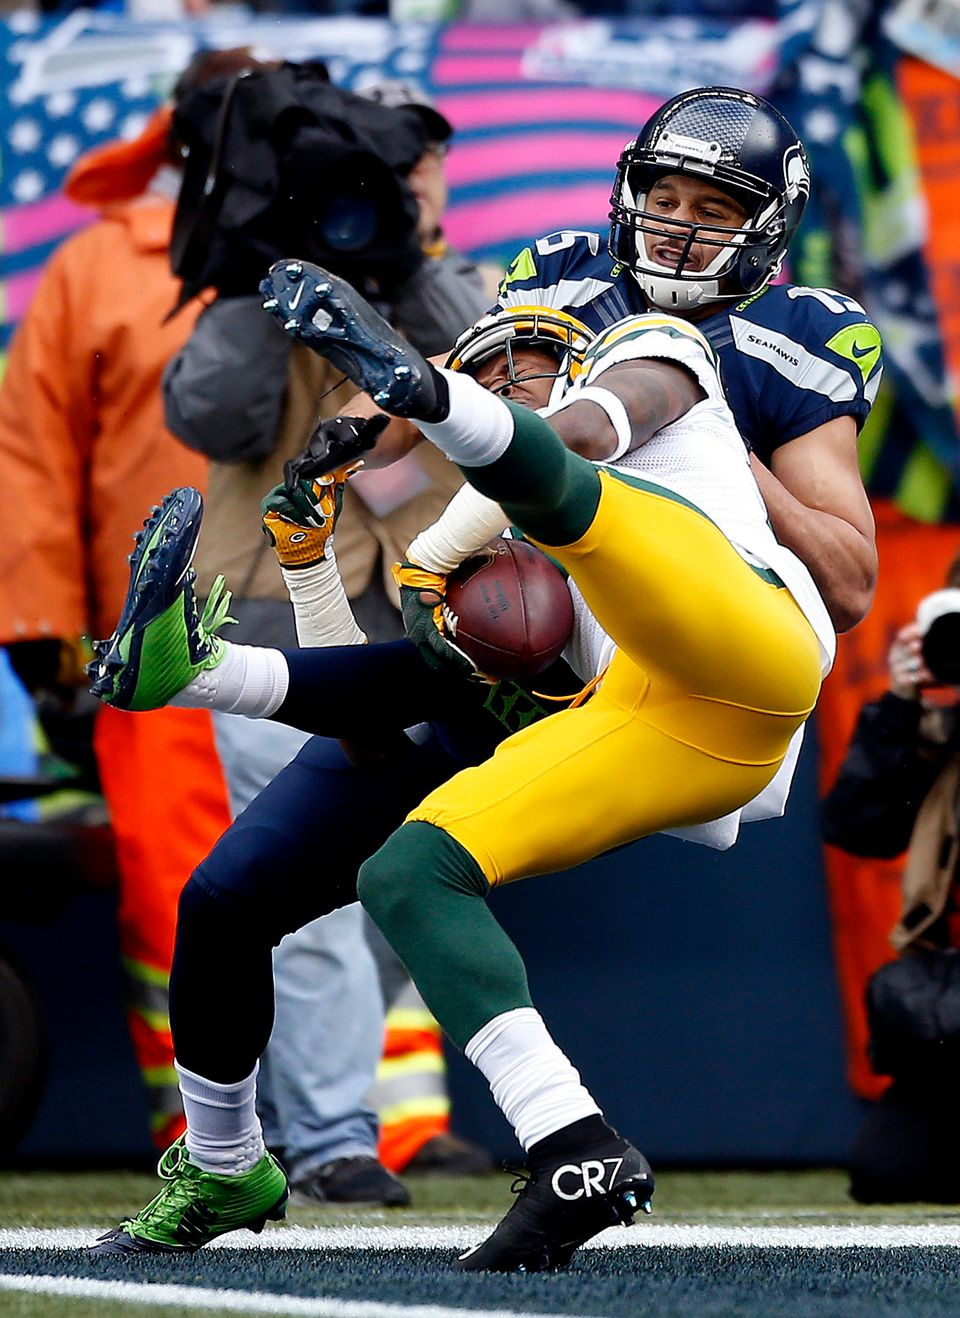 SEATTLE, WA - JANUARY 18:  Sam Shields #37 of the Green Bay Packers intercepts a pass intended for  Jermaine Kearse #15 of th